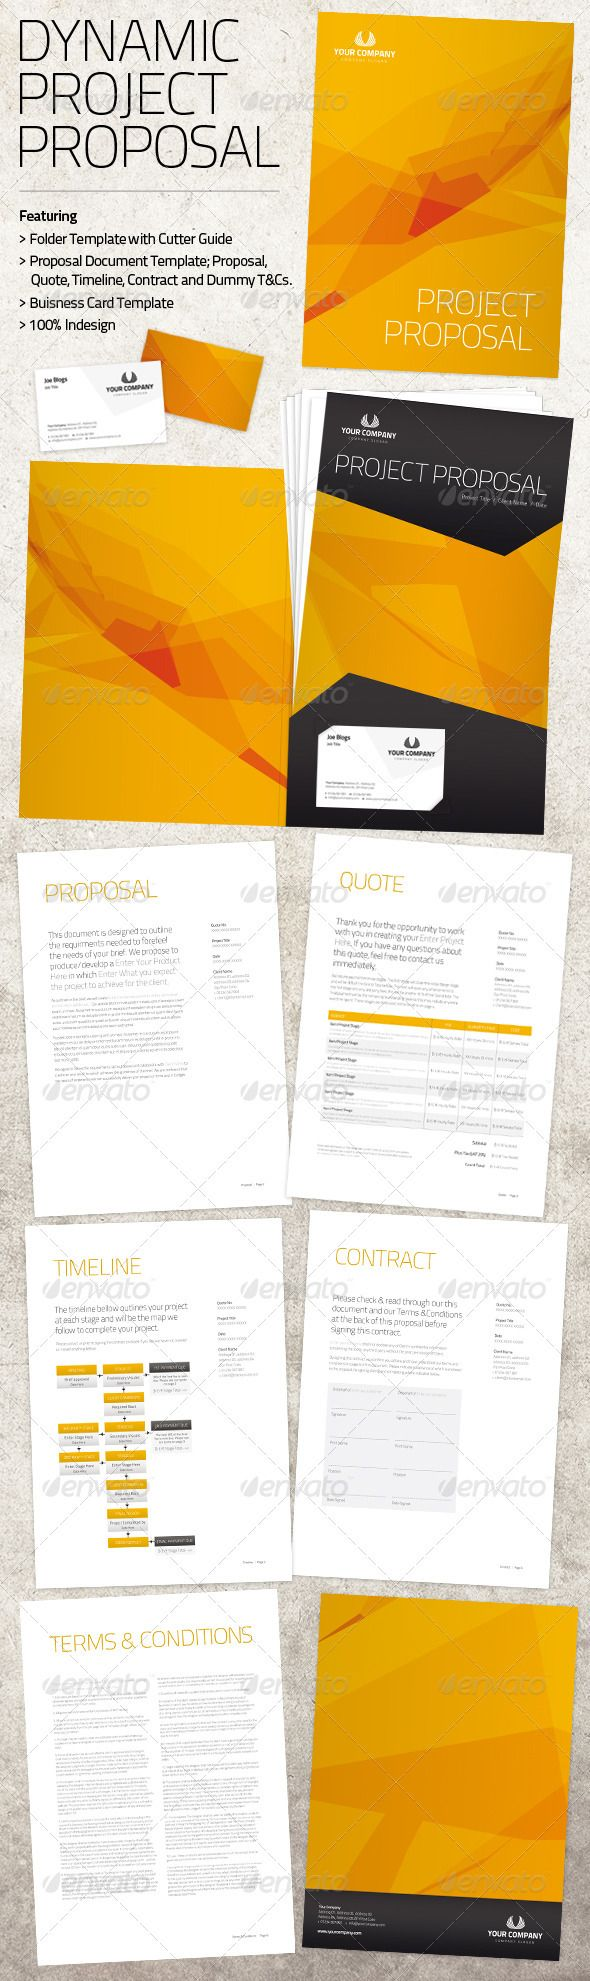 Proposal Layouts 298 Best Proposal Imagesgraphic Design Collection On Pinterest .